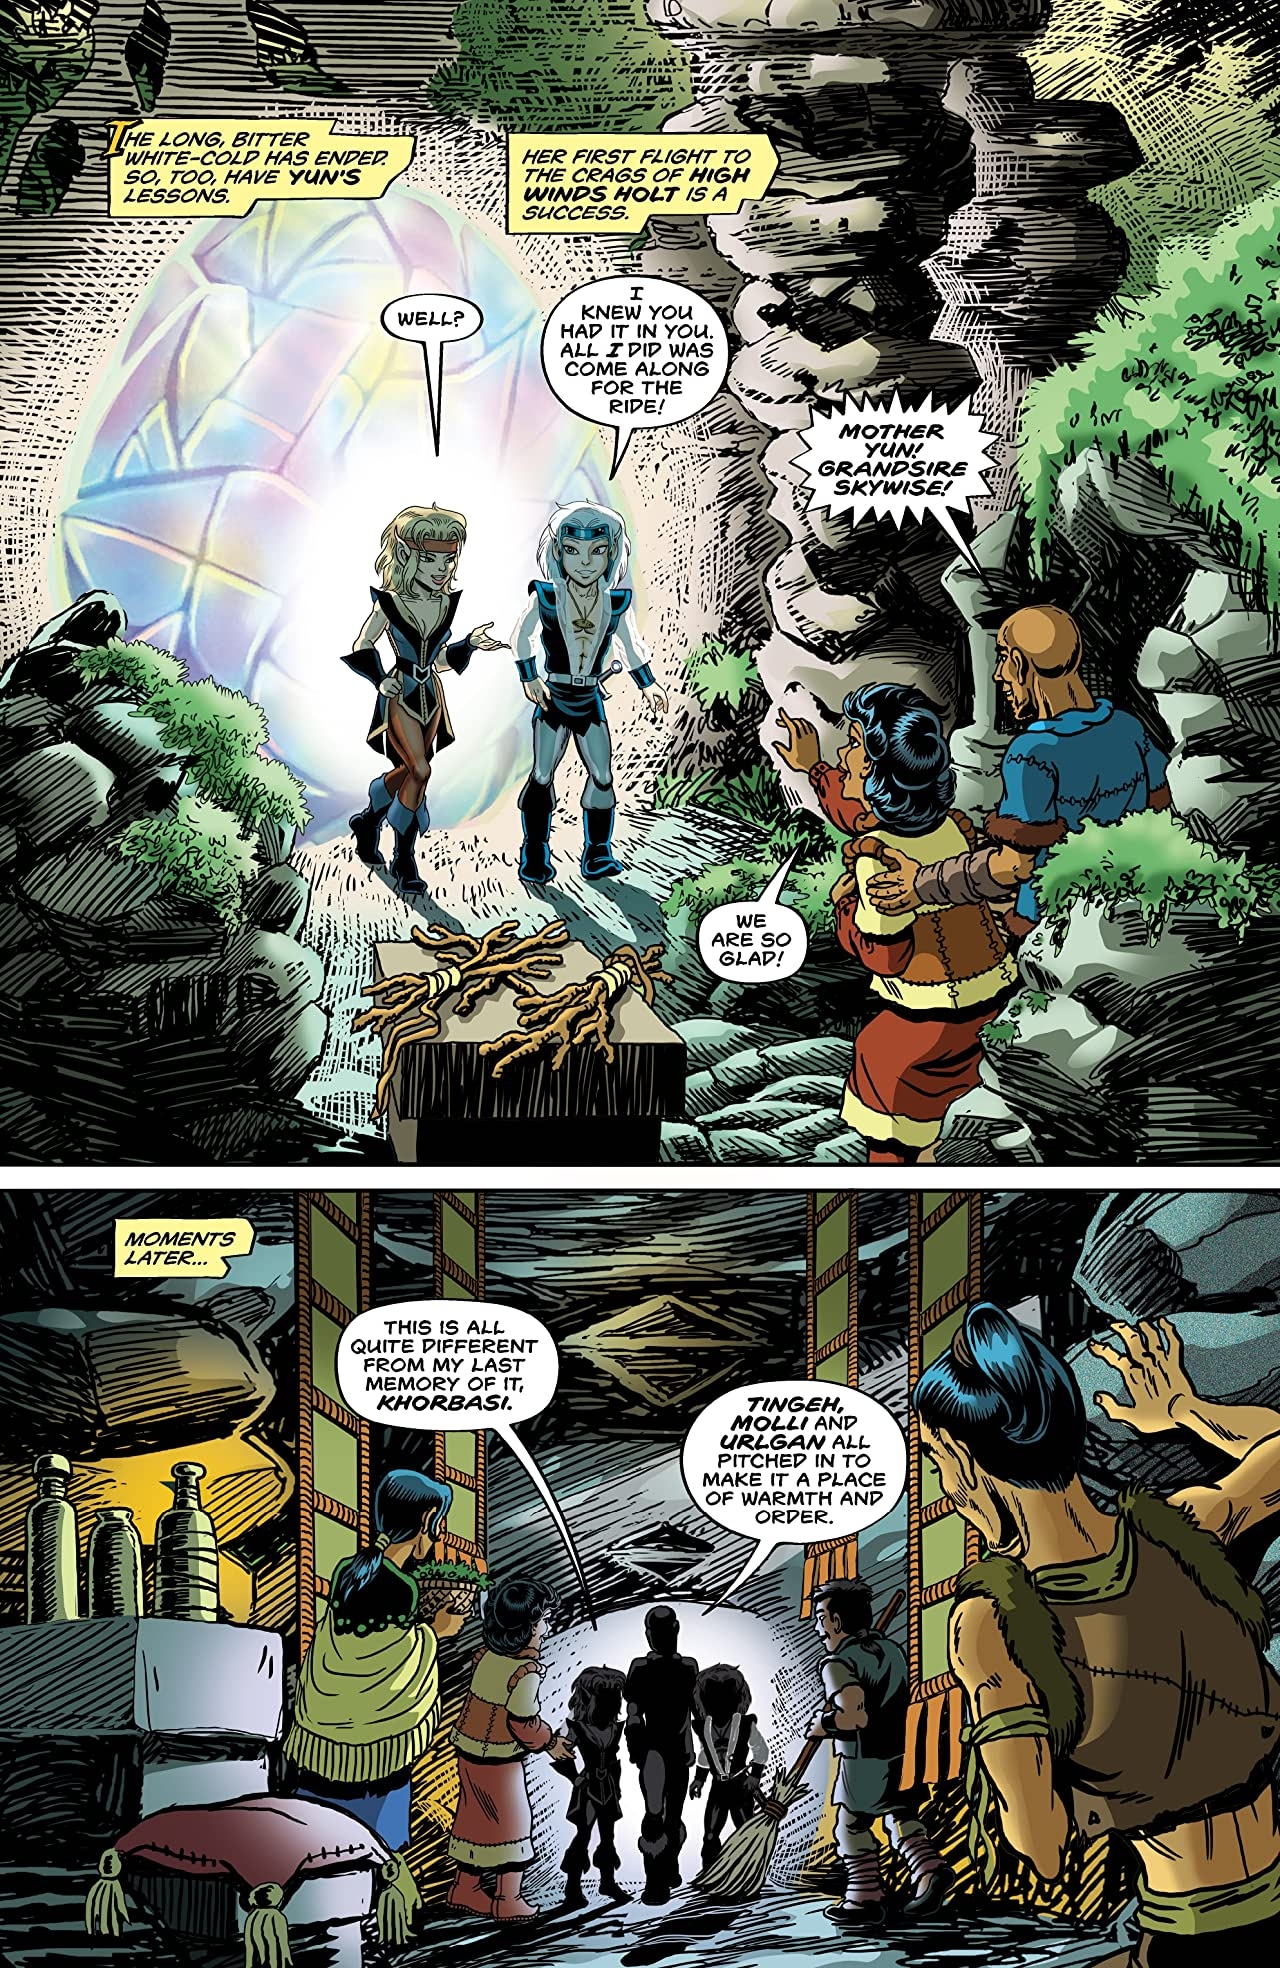 Elfquest: The Final Quest #22